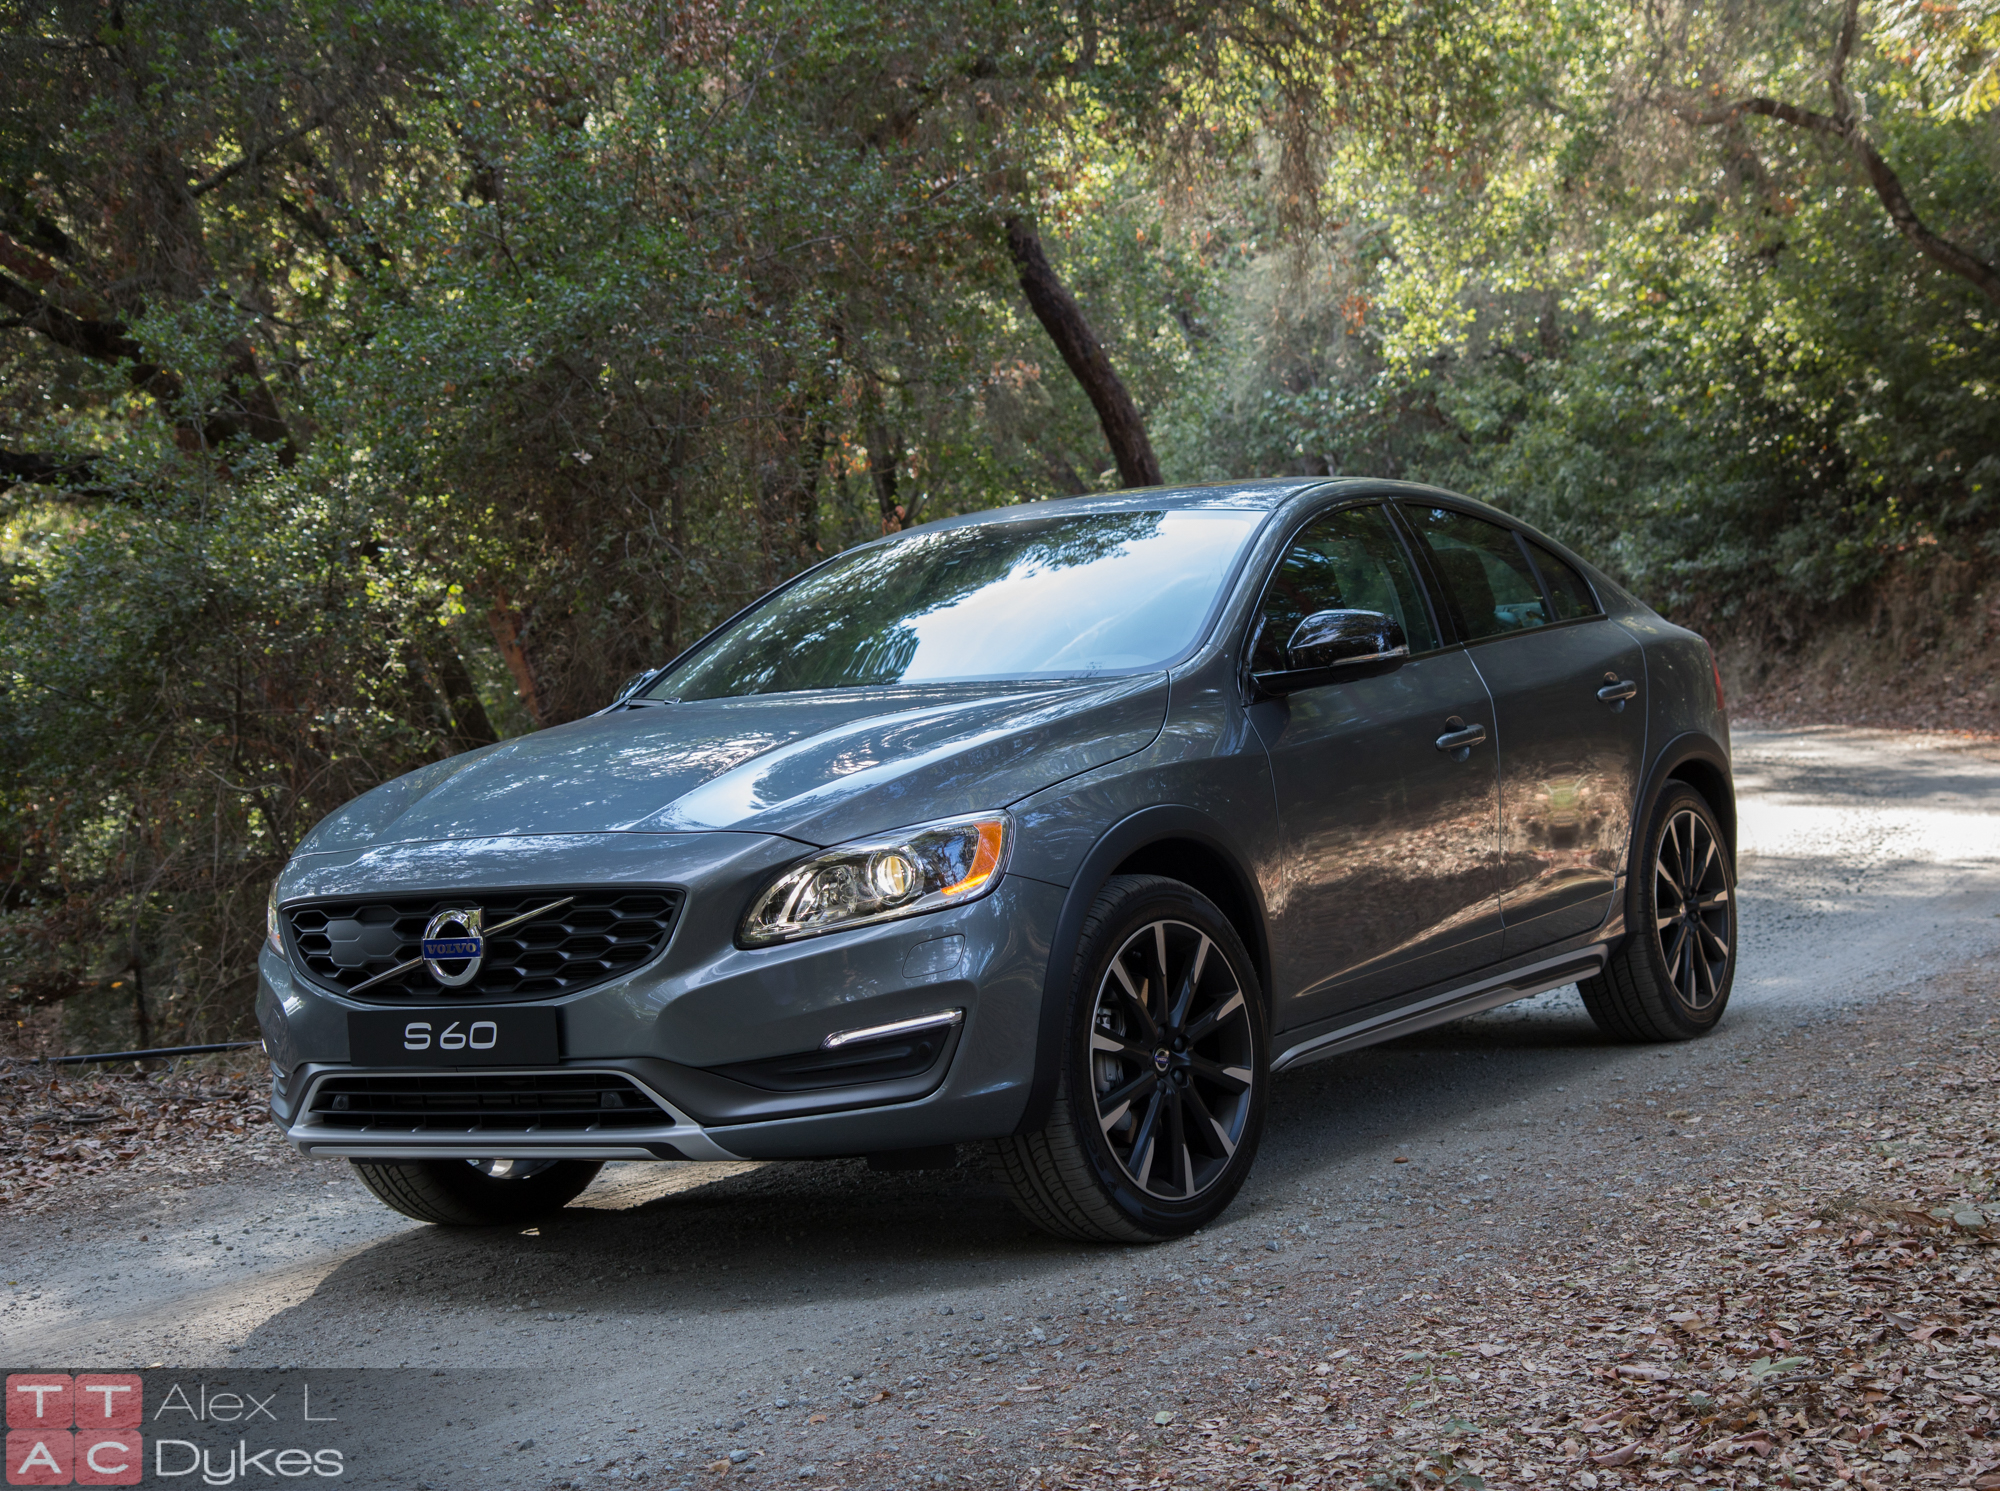 2016 Volvo S60 CC Review – The Sport Utility Sedan? [Video]